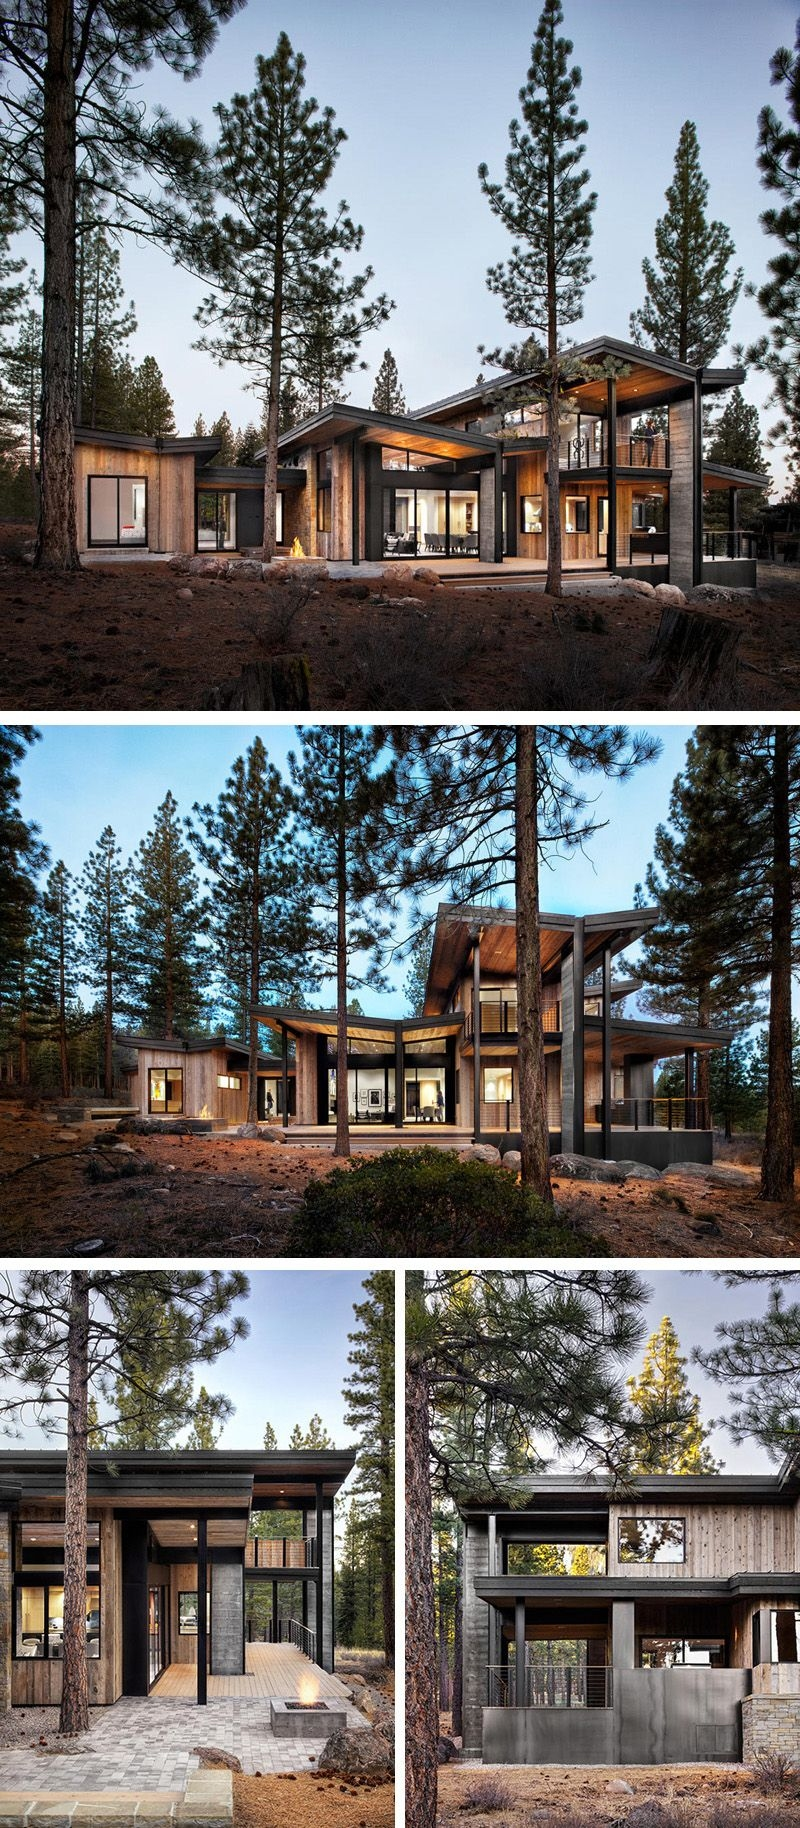 Permalink to 53 Best Rustic Mountain Home Plans